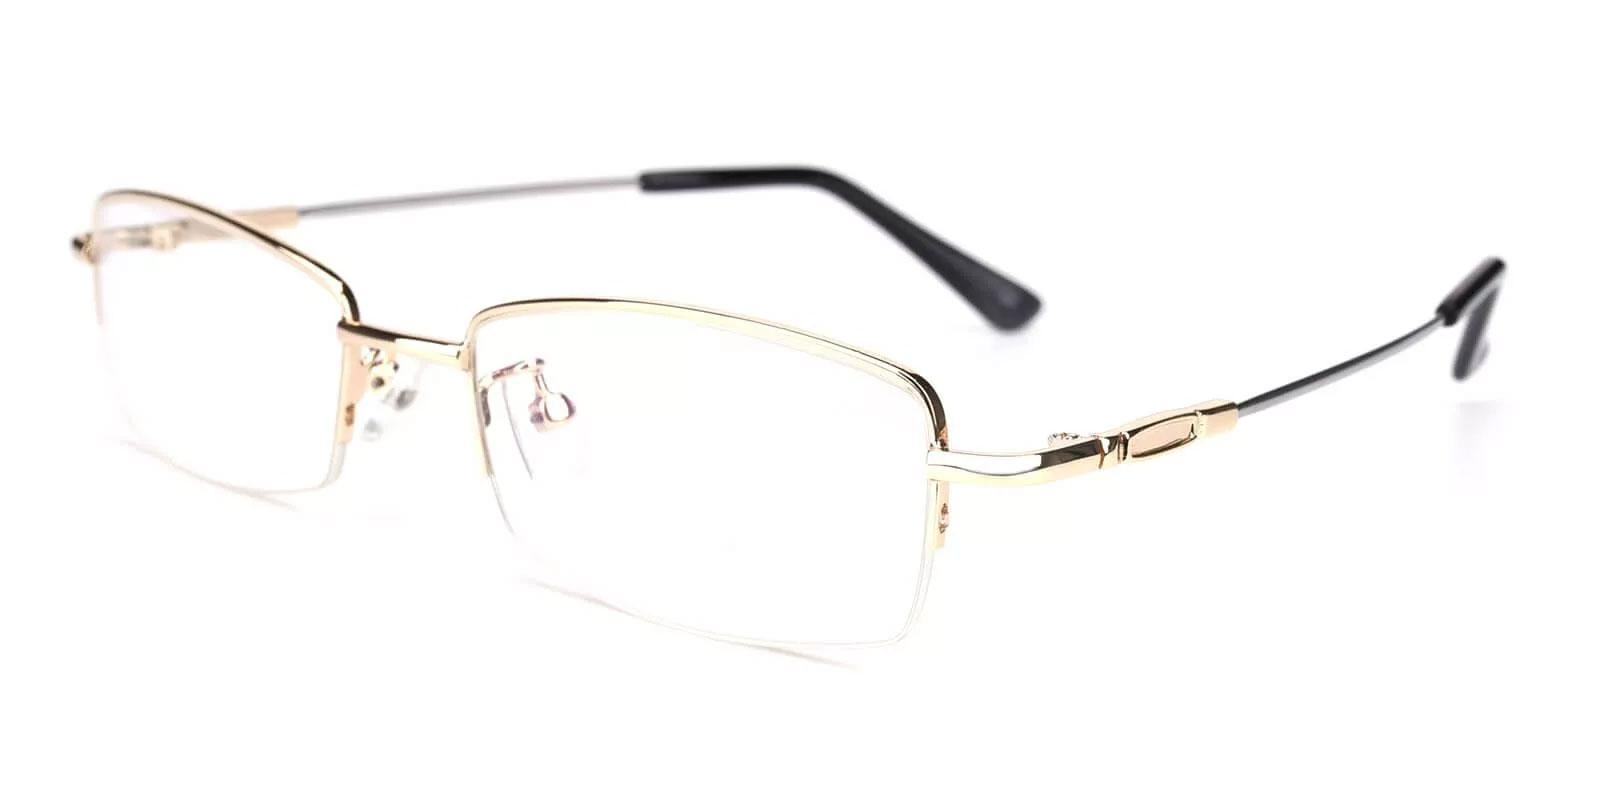 Benjamin Gold Metal Eyeglasses , NosePads Frames from ABBE Glasses